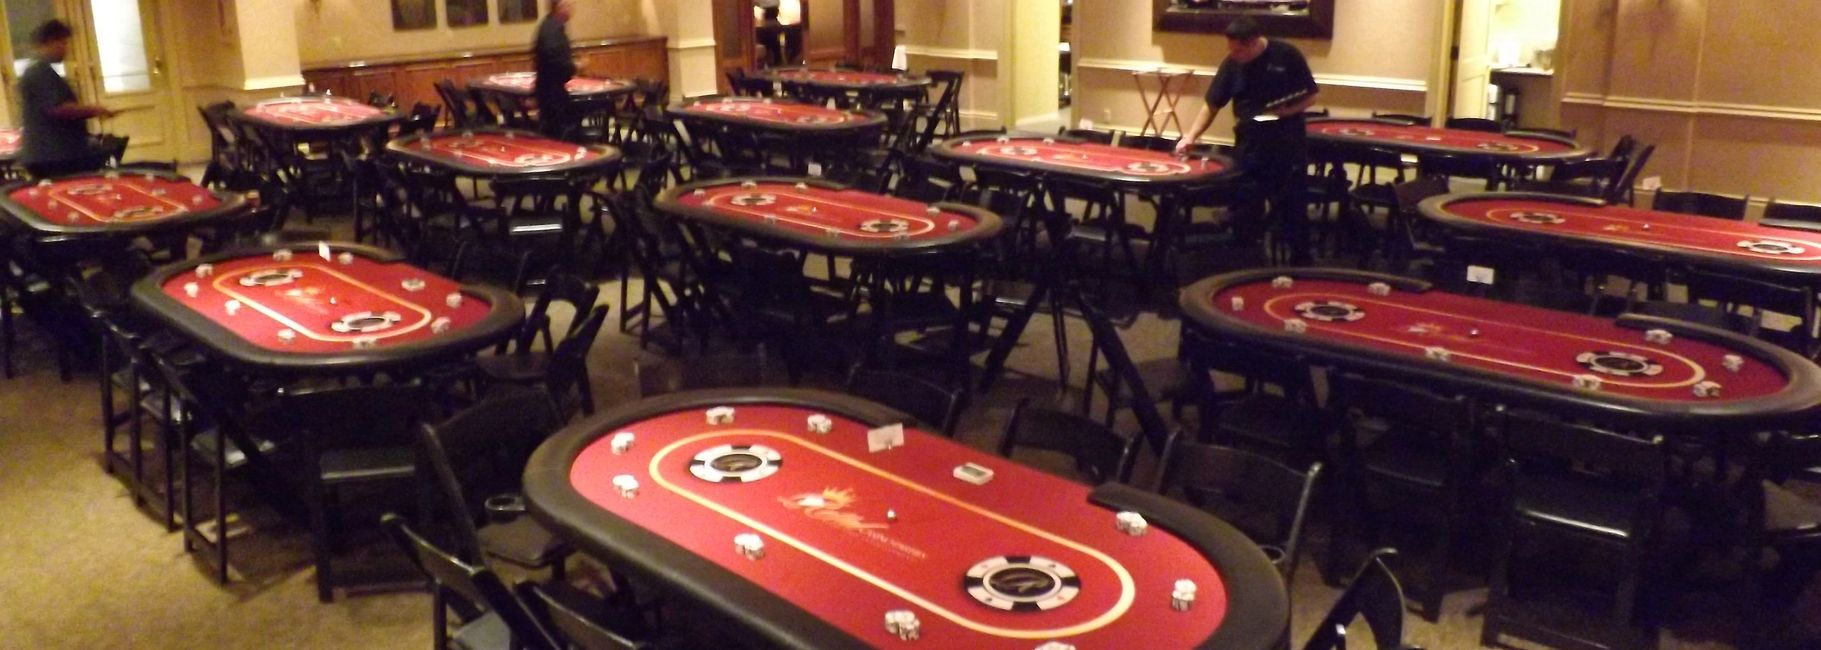 Poker Tables for Tournaments and Rentals